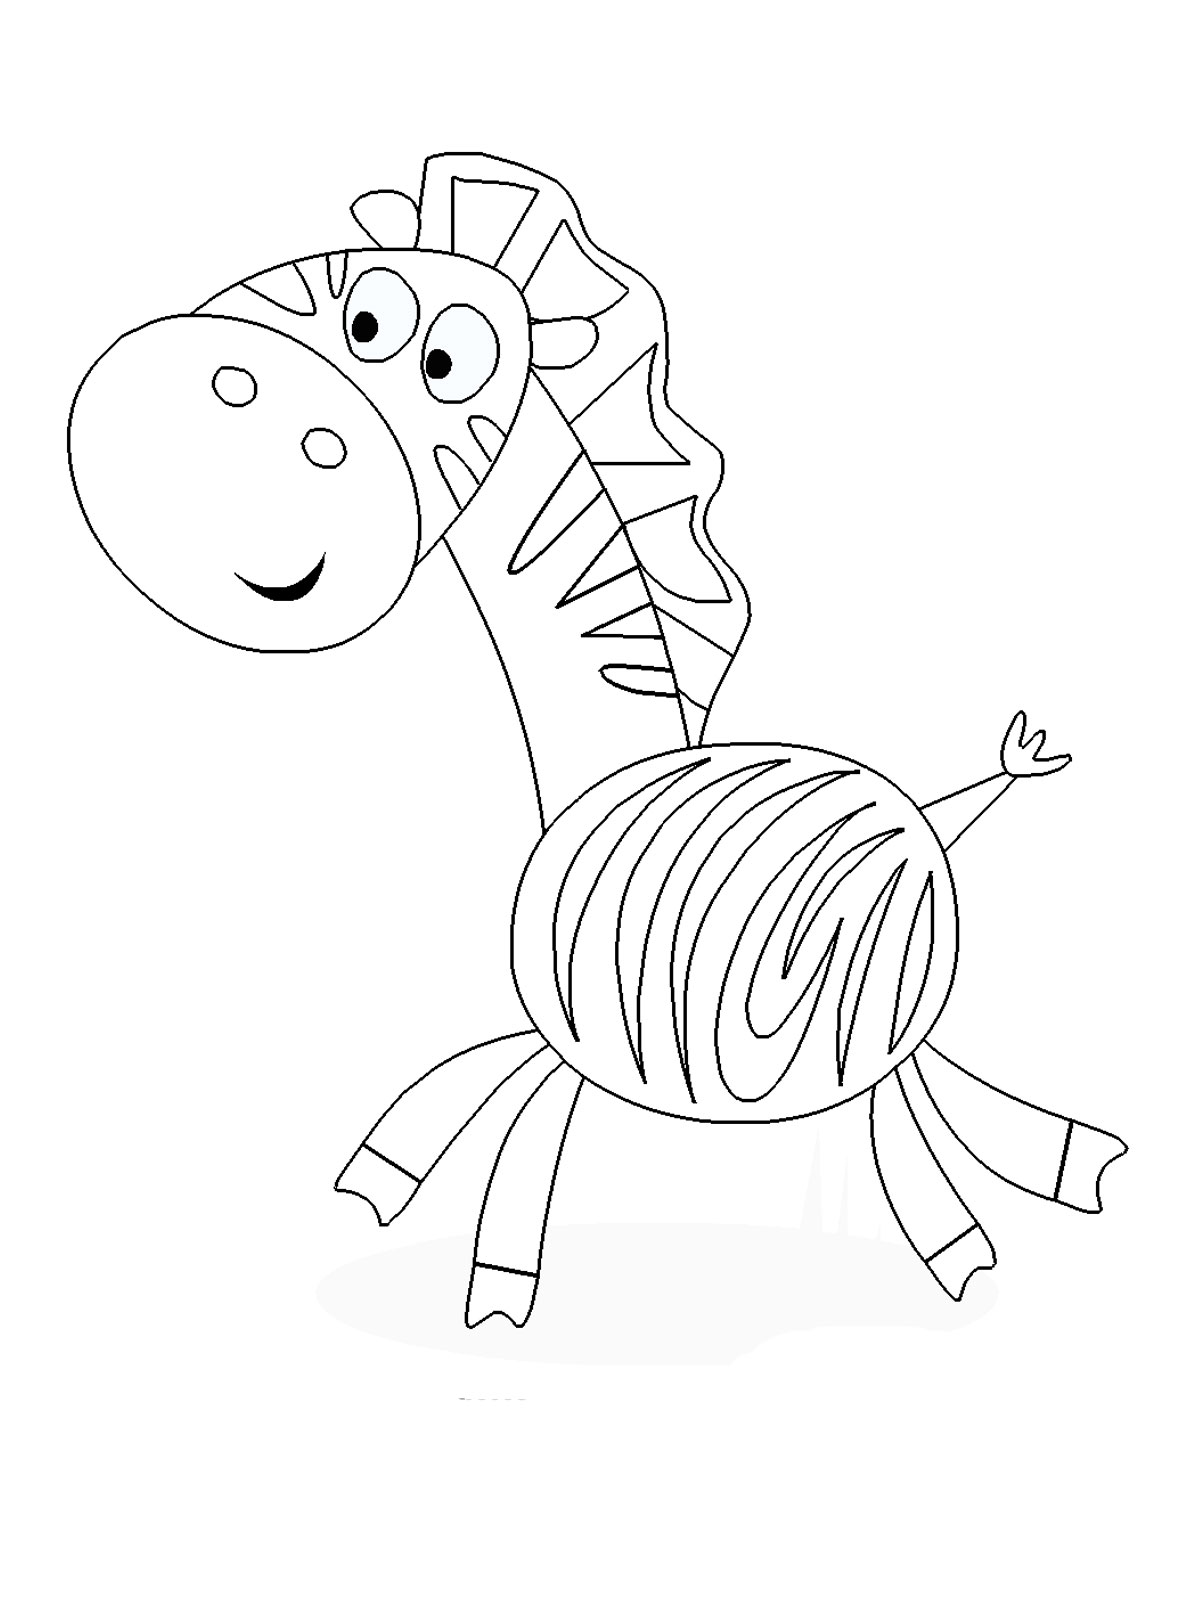 coloring printable free garfield coloring pages to download and print for free coloring free printable